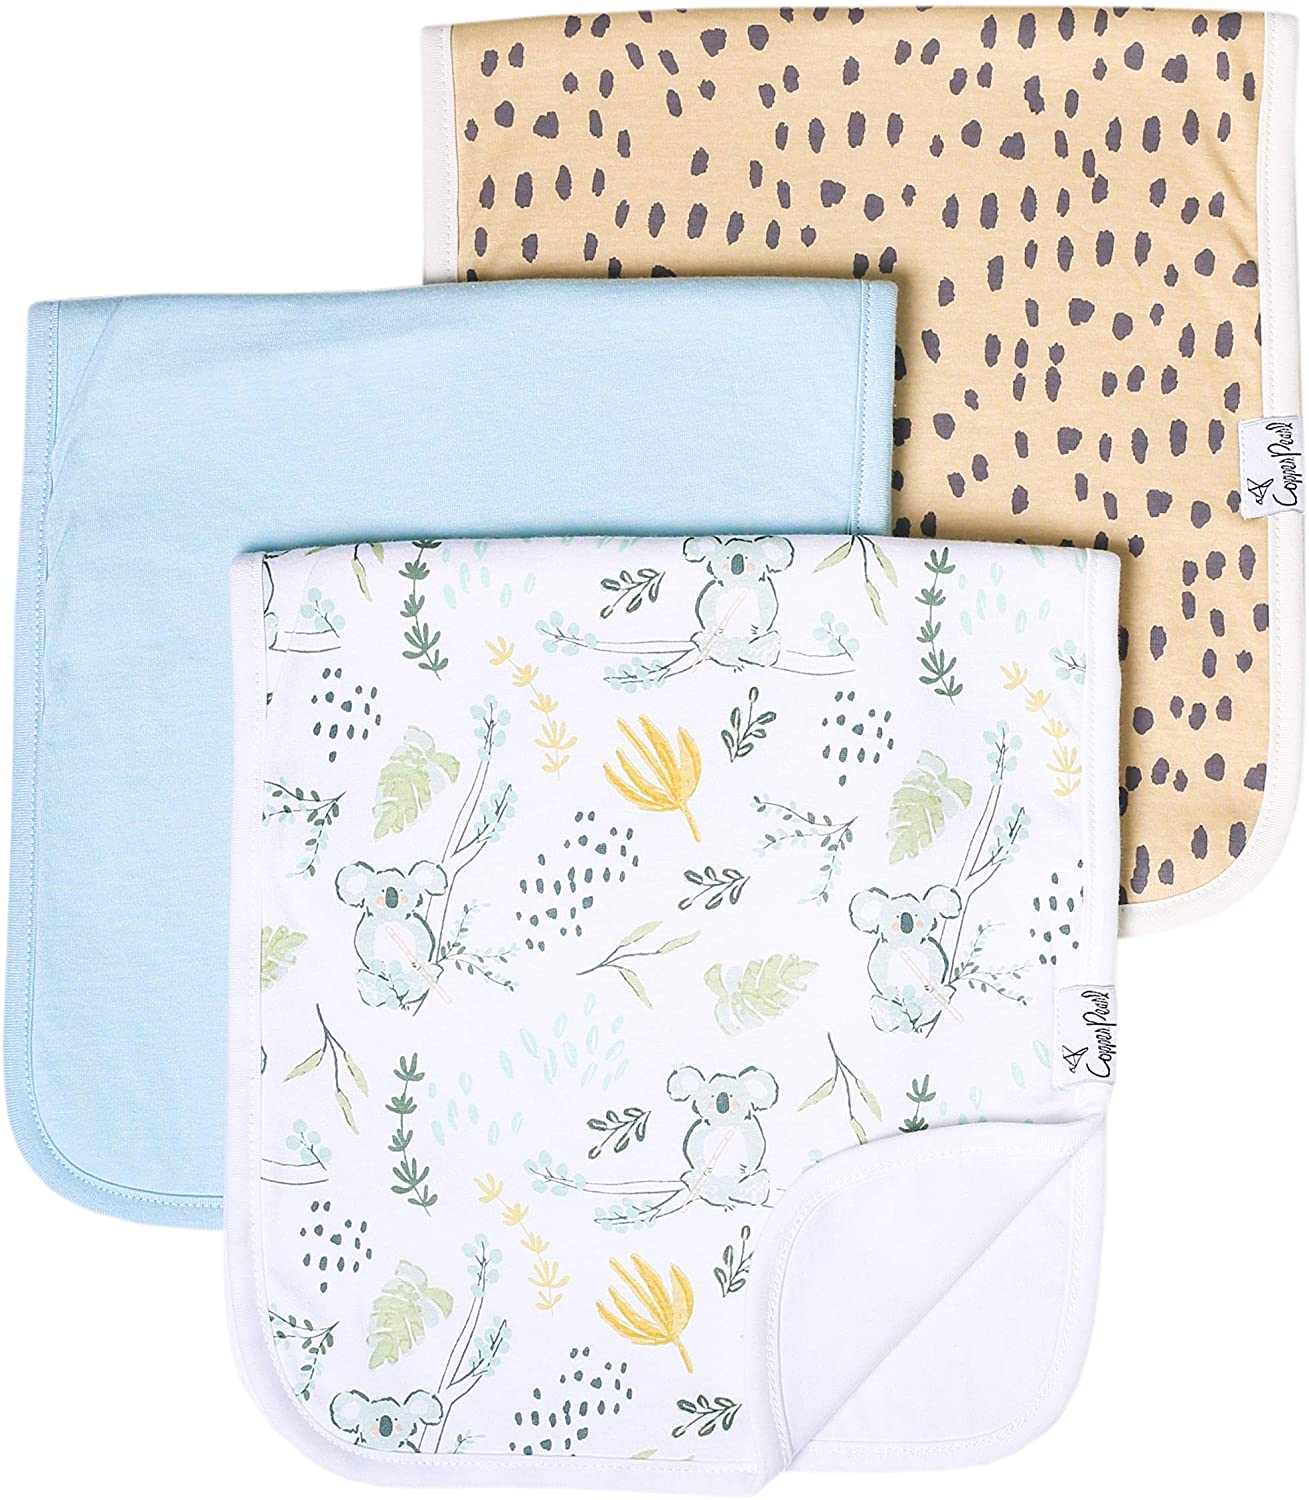 """Baby Burp Cloth Large 21''x10'' Size Premium Absorbent Triple Layer 3-Pack Gift Set """"Aussie"""" by Copper Pearl"""